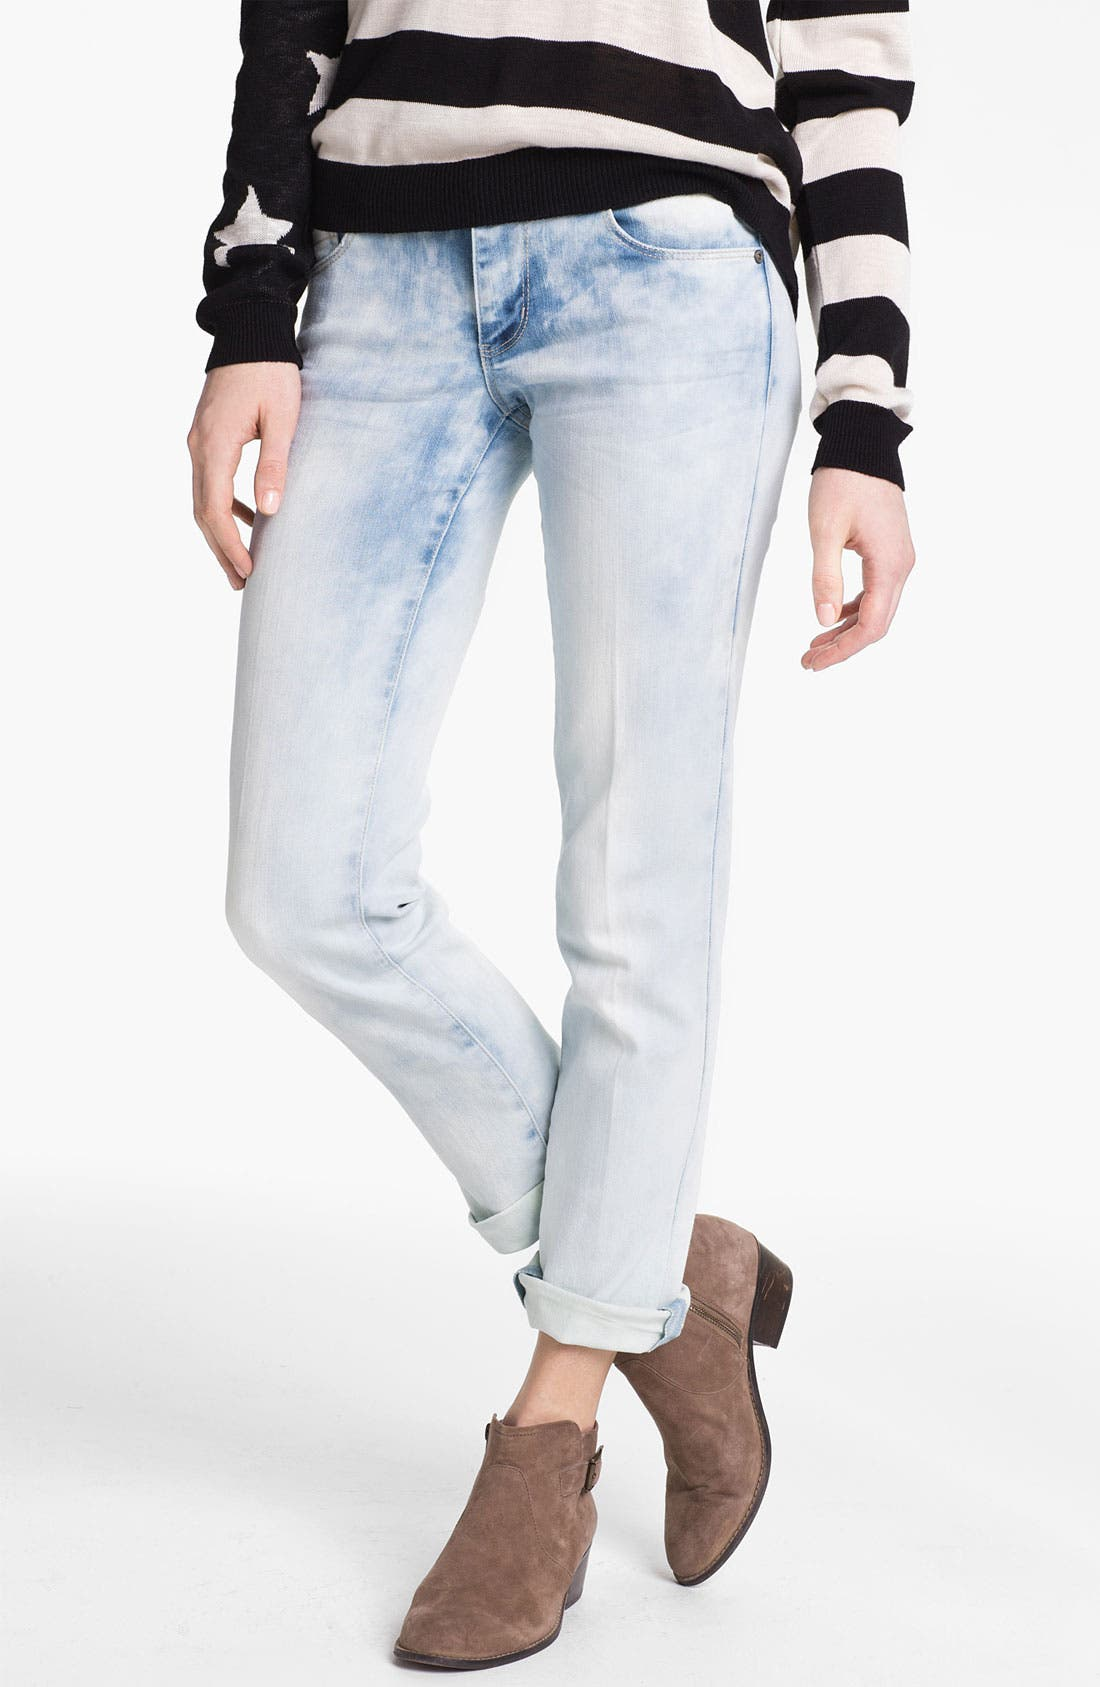 Main Image - Jolt Acid Wash Boyfriend Skinny Jeans (Juniors)